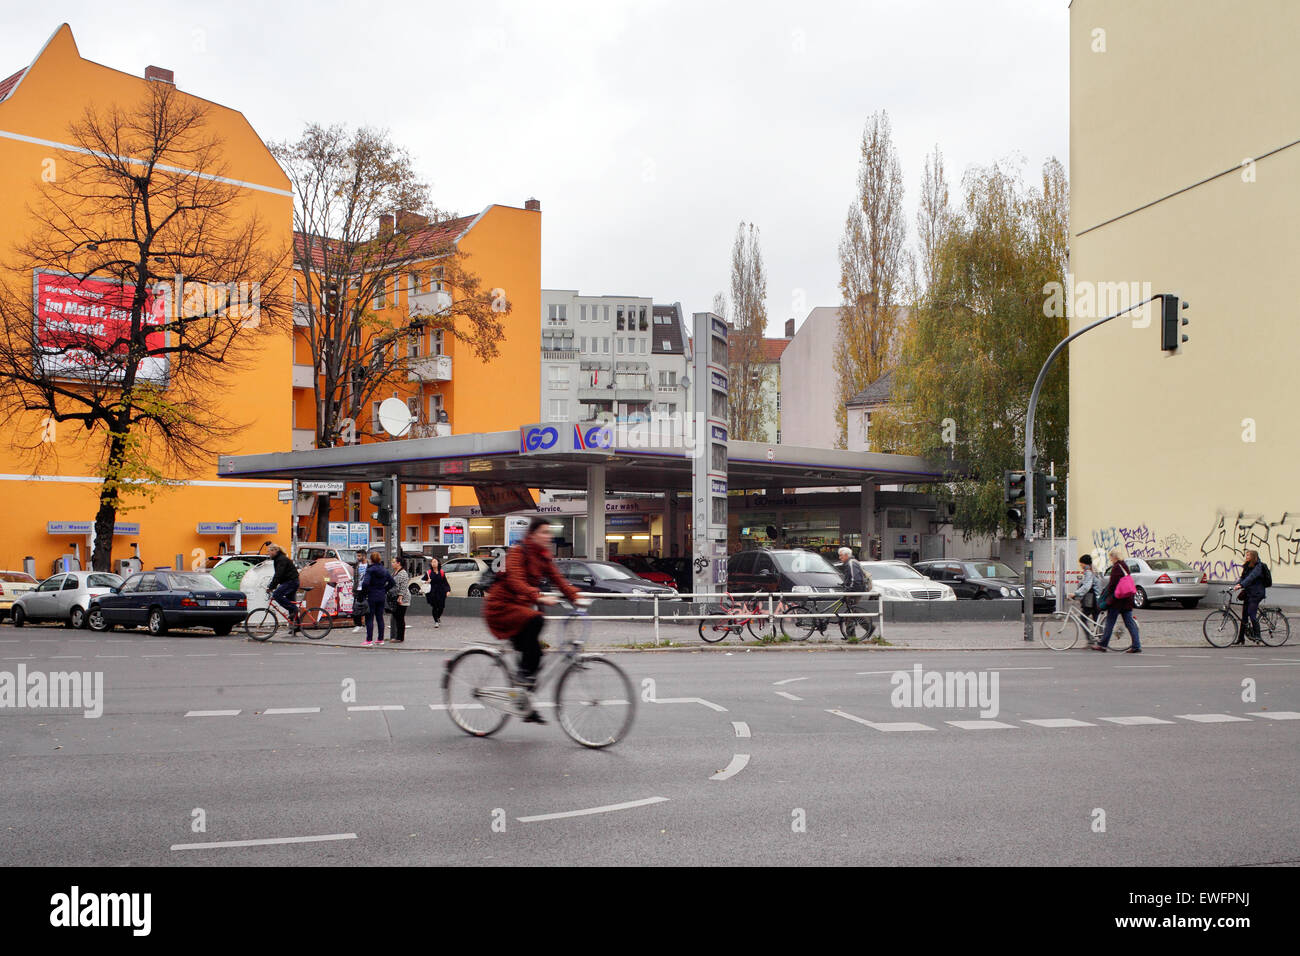 Berlin, Germany, GQ petrol station in the Karl-Marx-Strasse - Stock Image